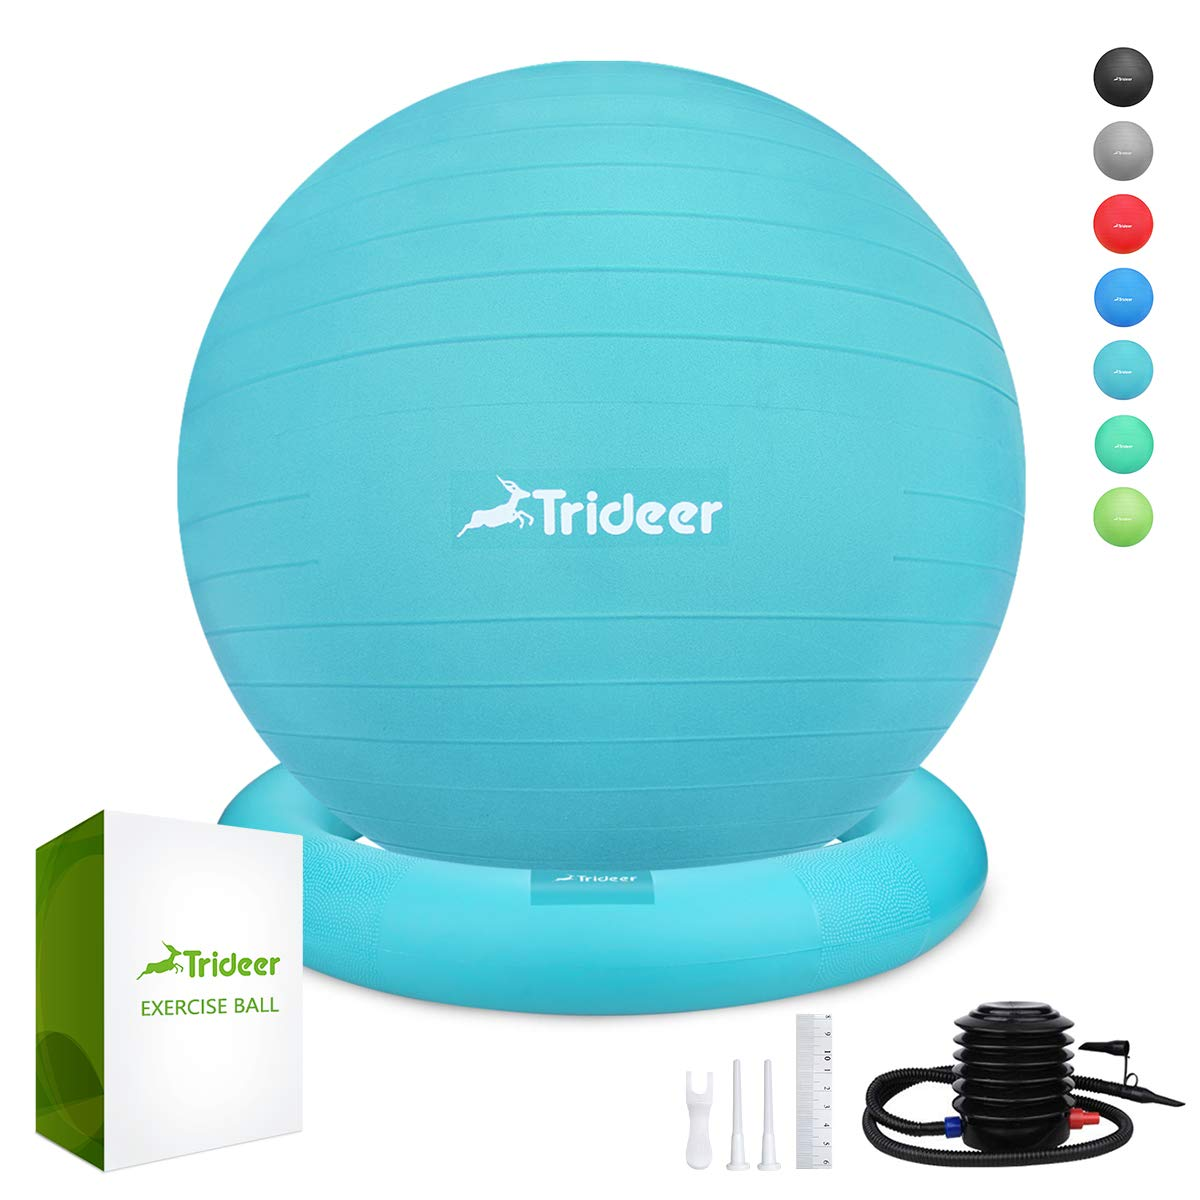 Trideer Ball Chair, Exercise Stability Yoga Ball with Base for Home and Office Desk, Ball Seat, Flexible Seating with Ring & Pump, Improves Balance, Back Pain, Core Strength & Posture(Ball with Ring